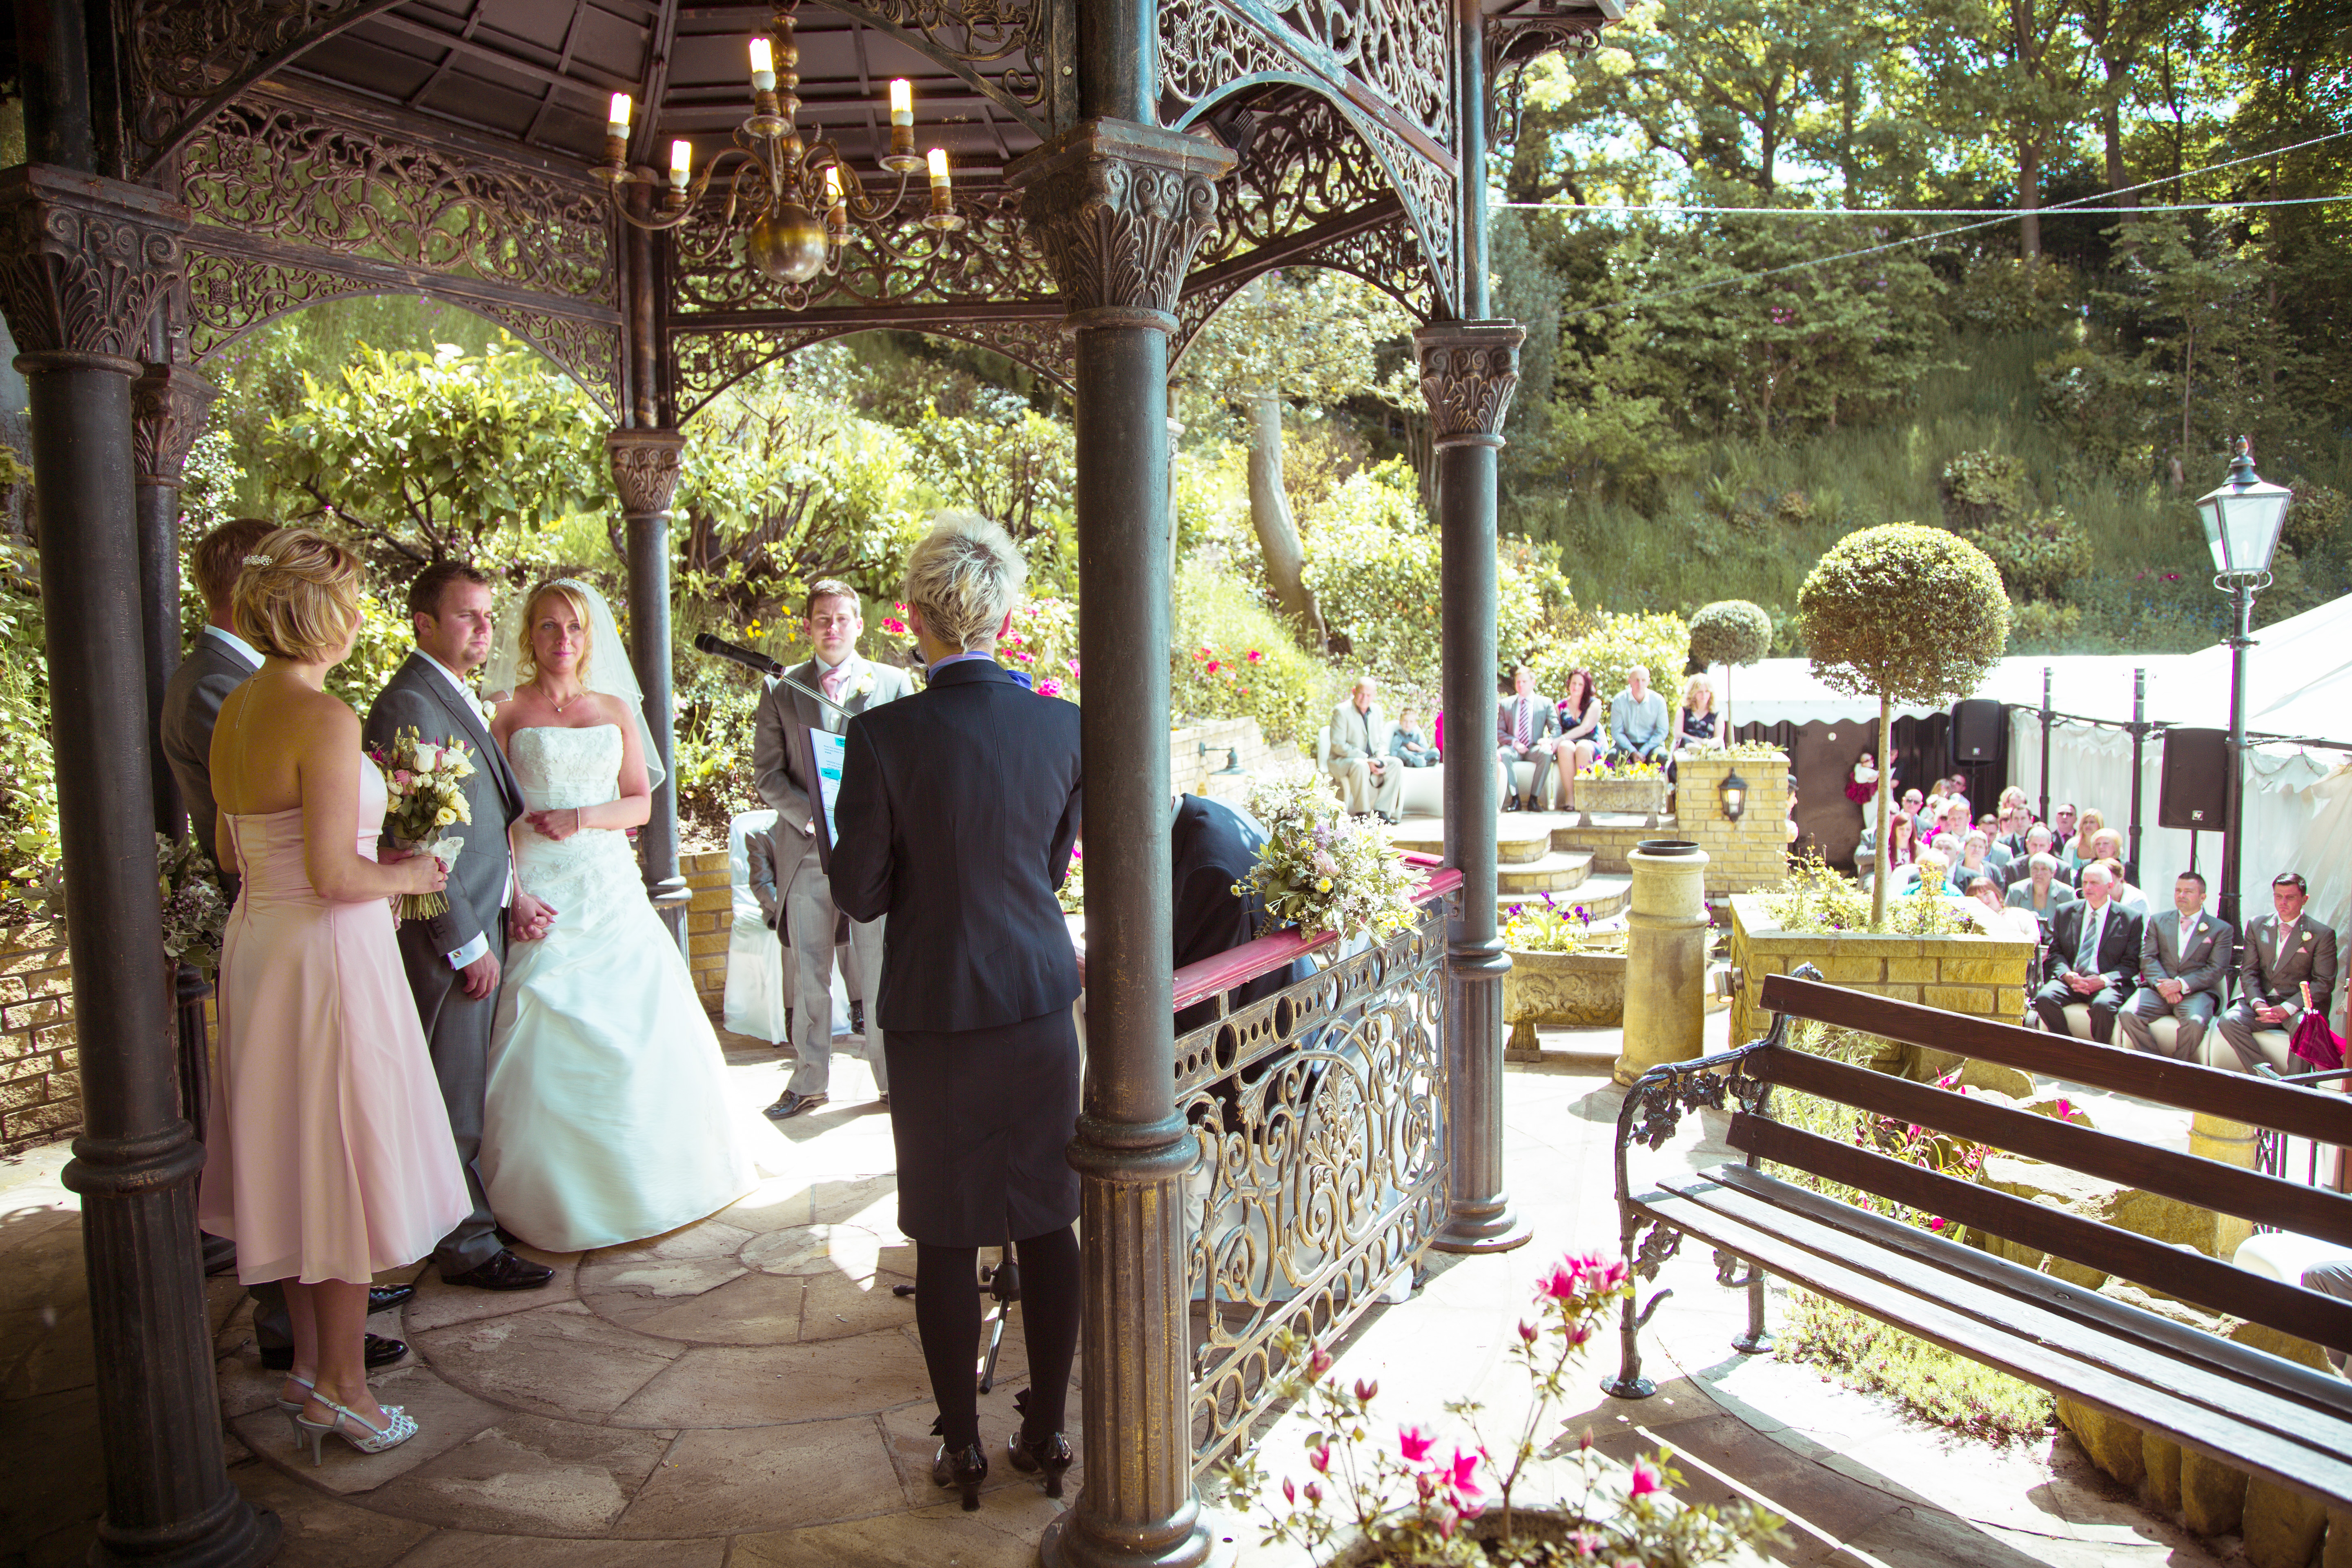 Signing the register - Grimscote manor outdoor wedding